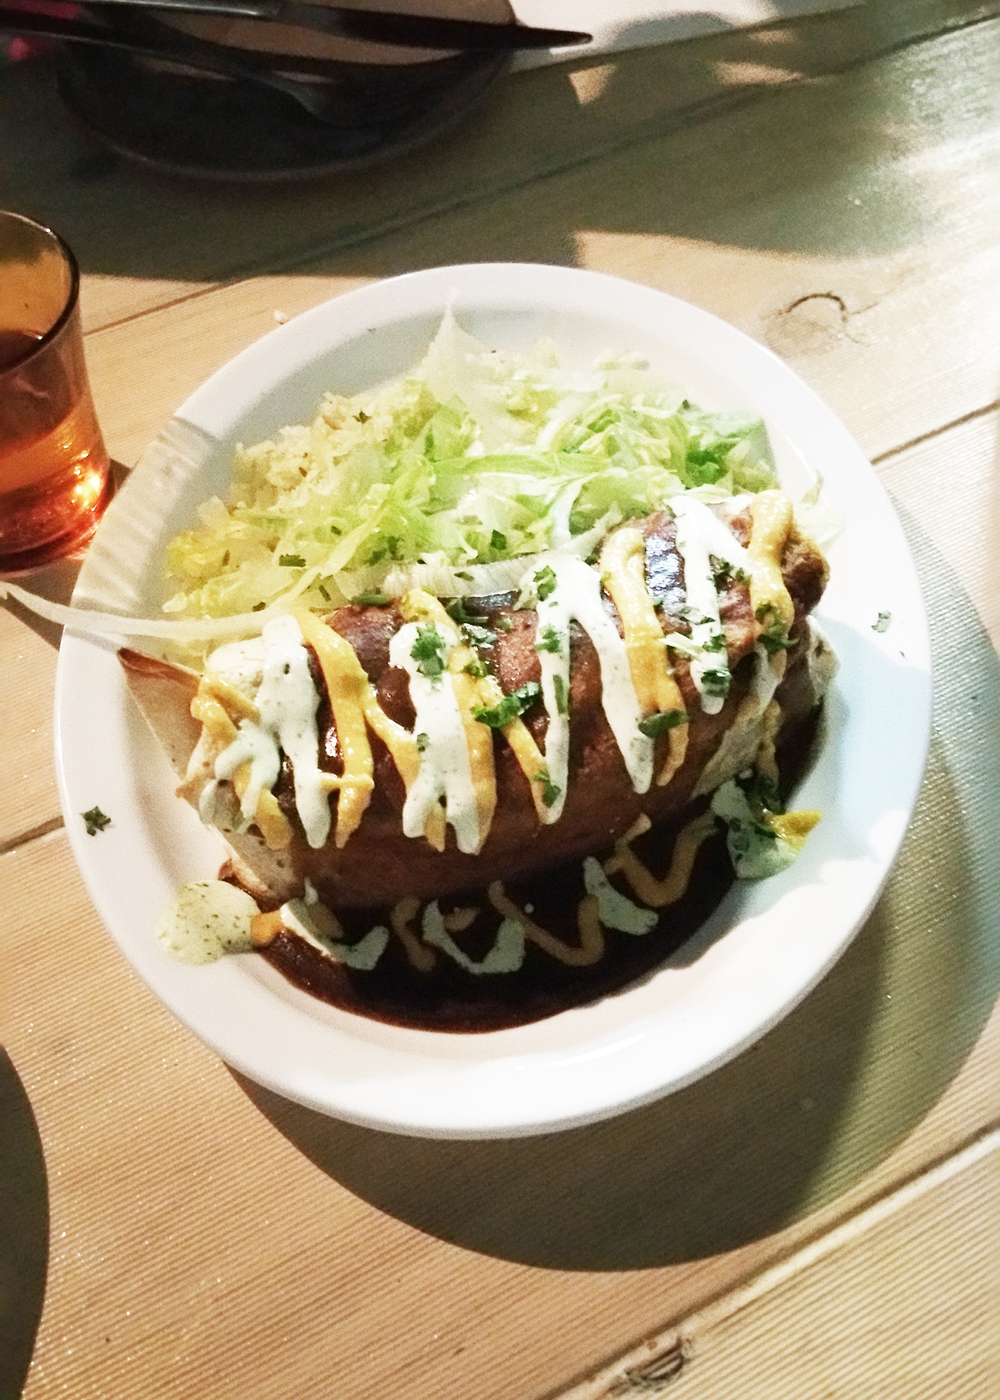 Carnitas Burrito: filled with 'pulled pork' carnitas and spiced black beans, served wet-style with red enchilada sauce, coriander cream and melty cheese on top. Served with coriander & lime rice on the side.